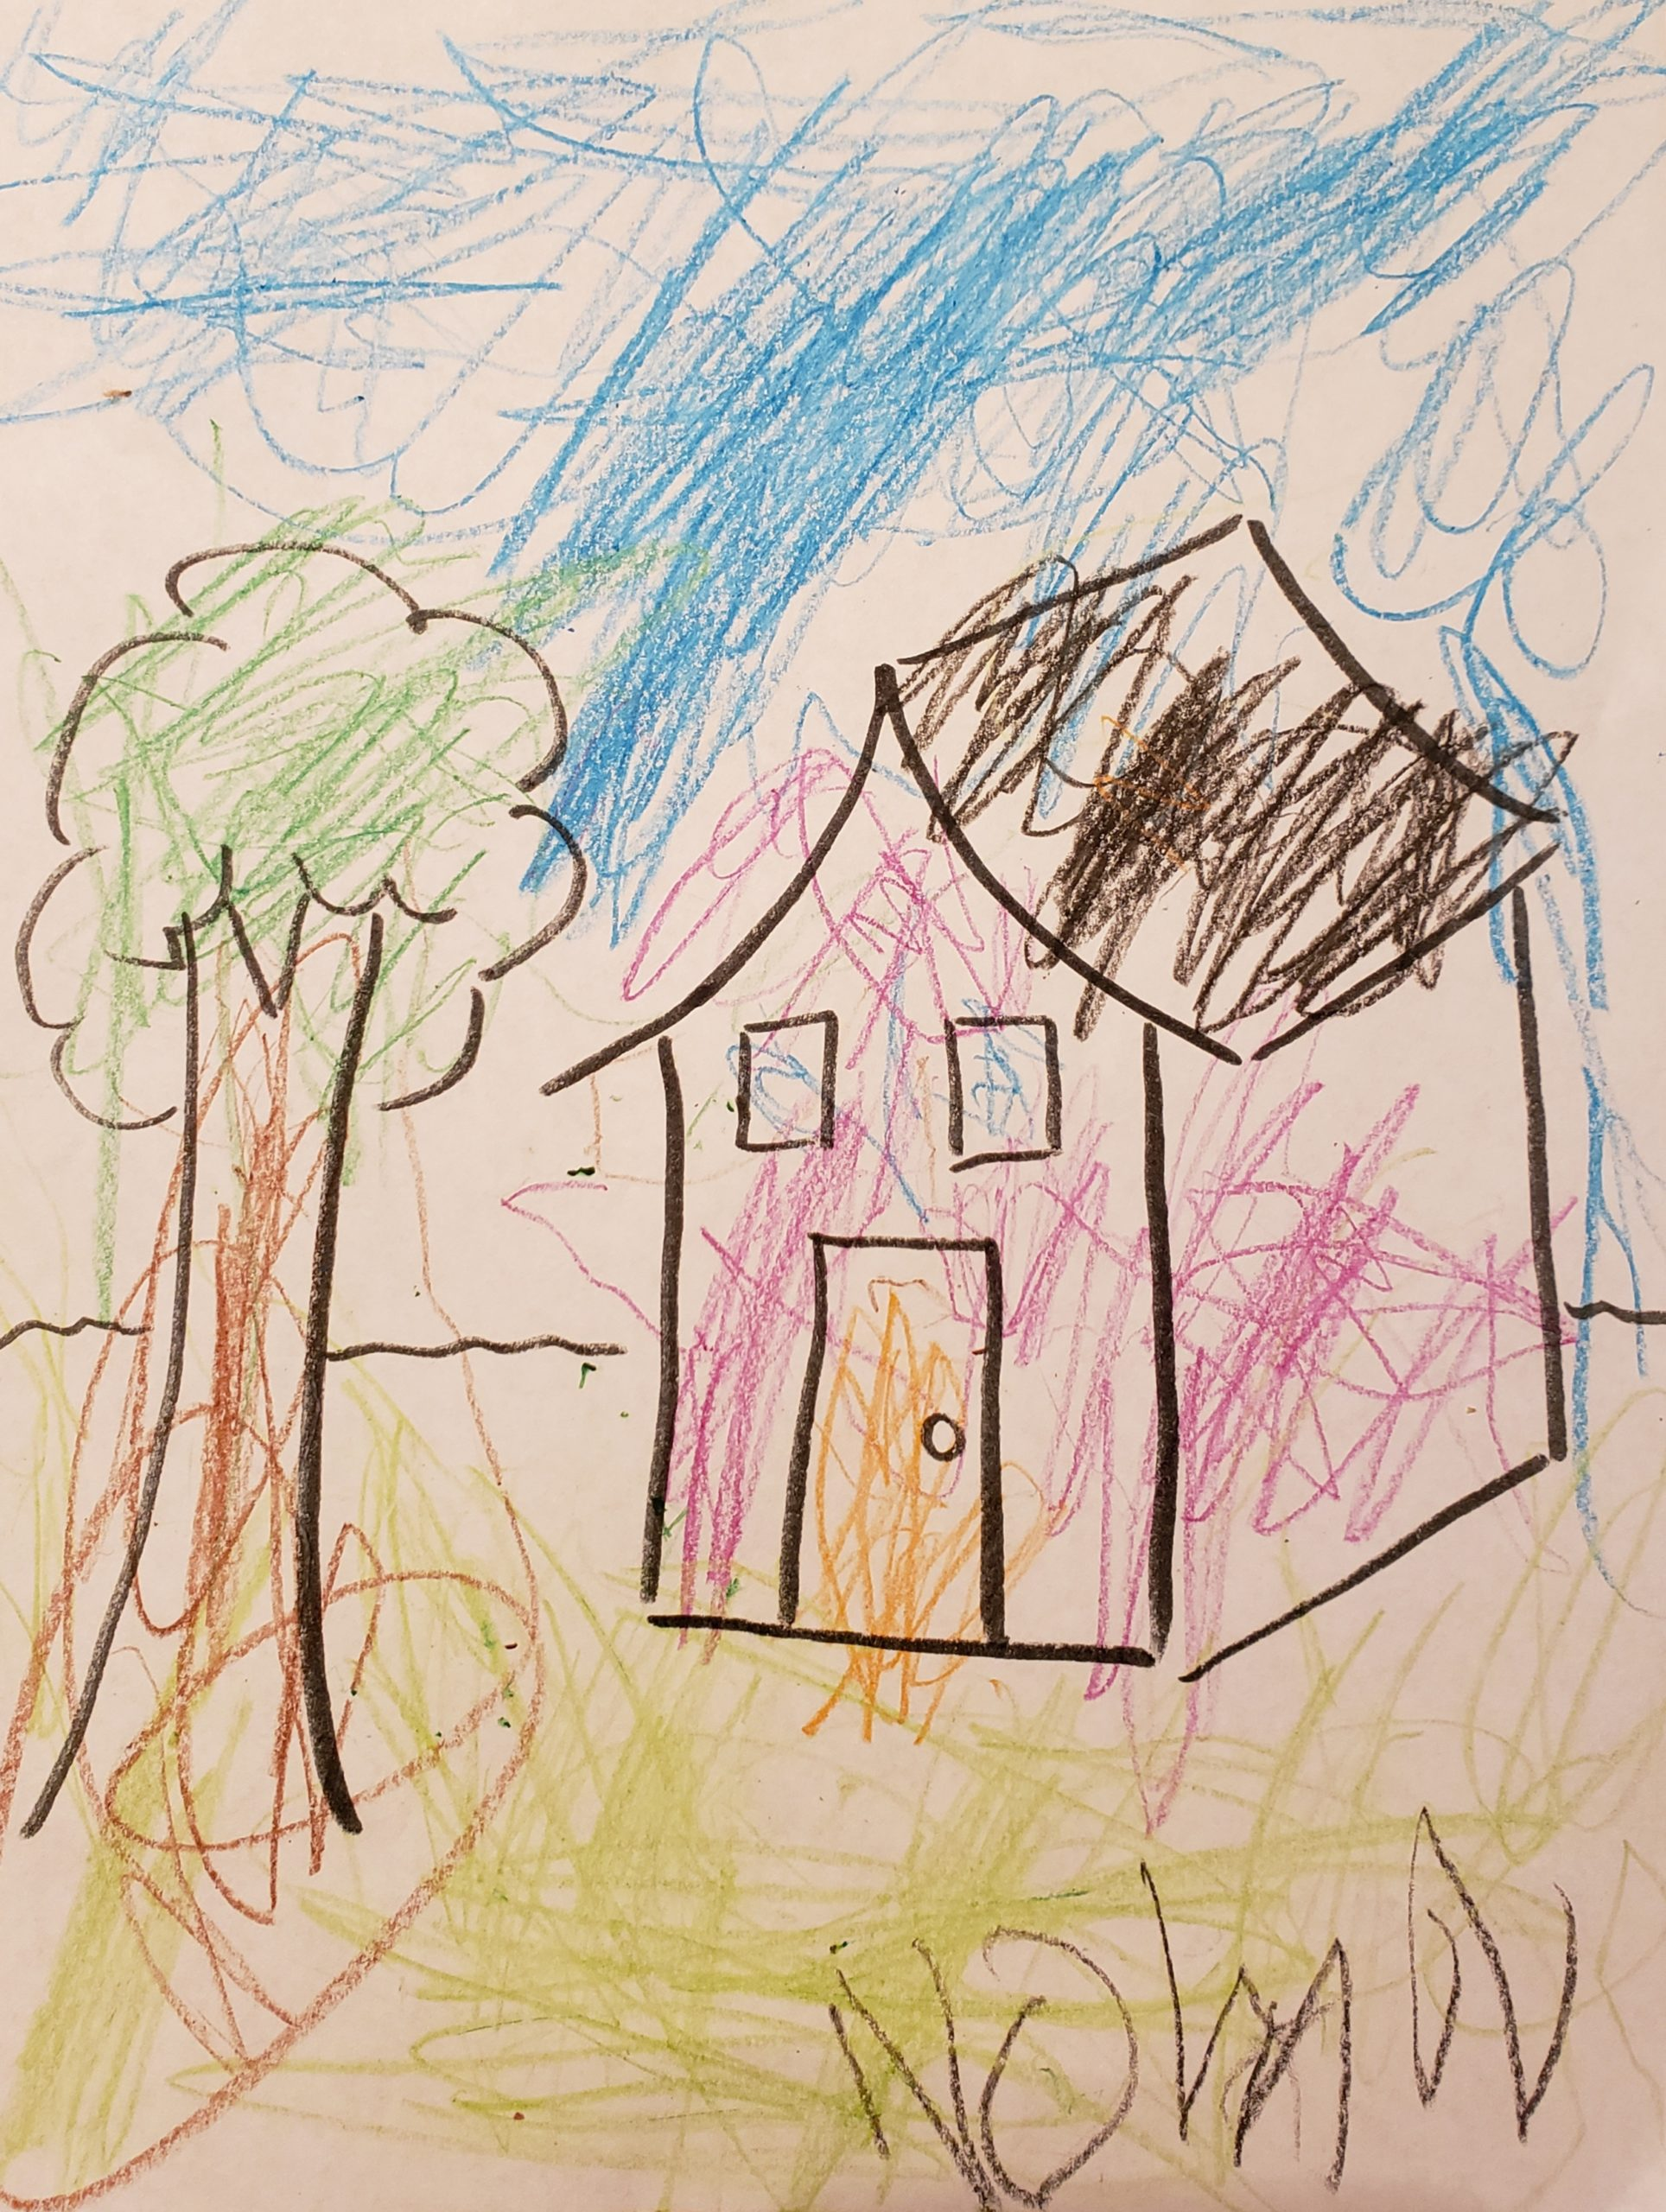 7 year old Nolan has been having trouble adjusting to all the recent changes, especially as a child on the autism spectrum. He finds comfort in playing outside, singing his original songs, and coloring (like the image you see here).